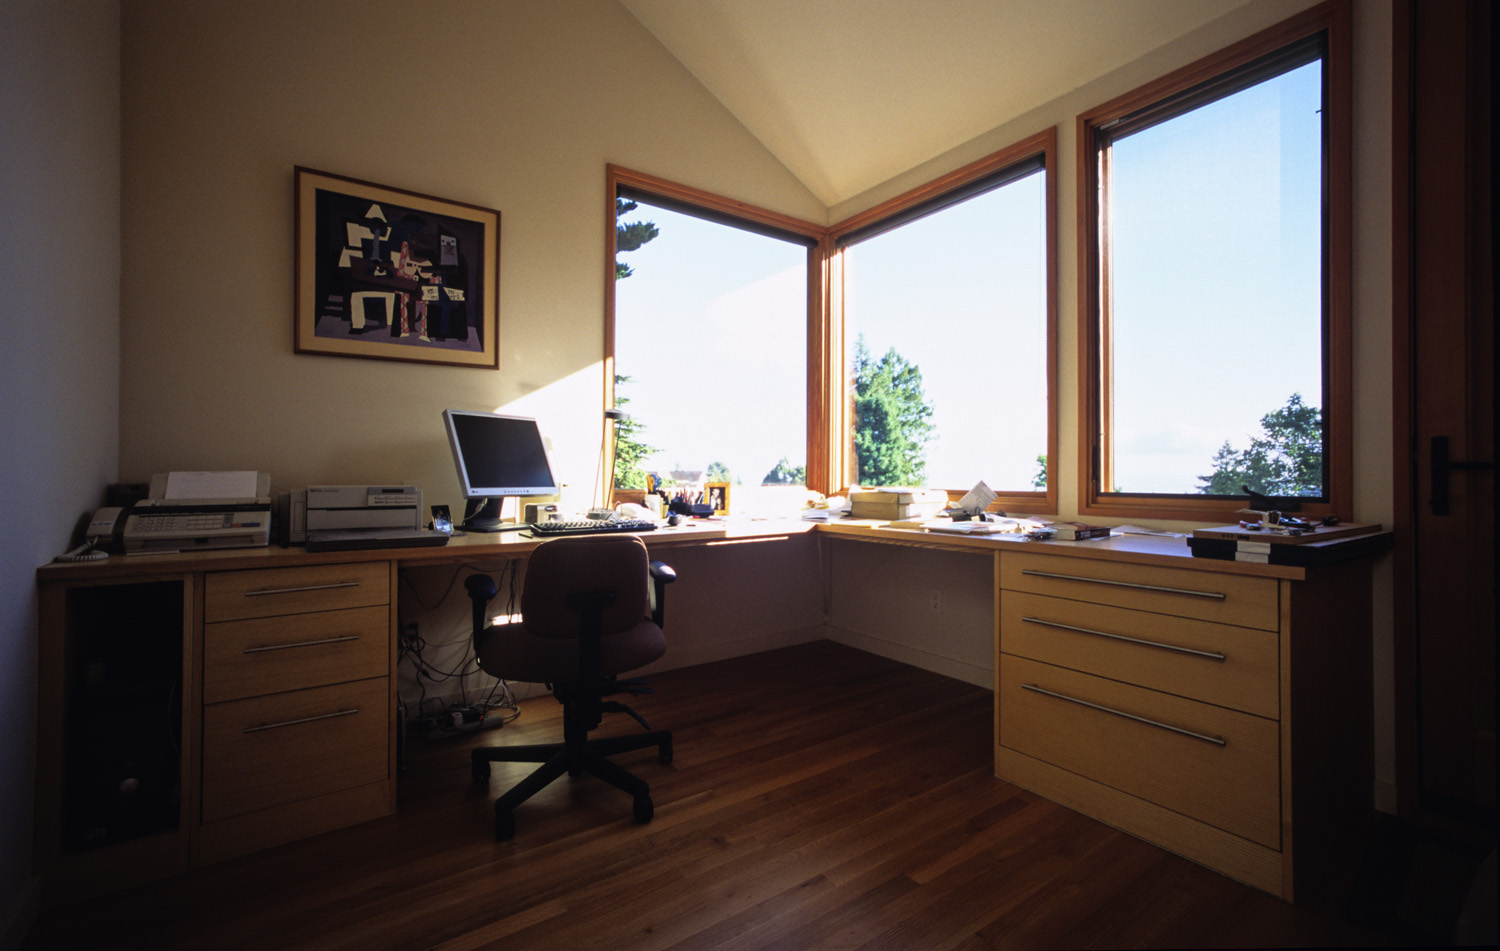 The study's corner window looks out to San Francisco and the bay.